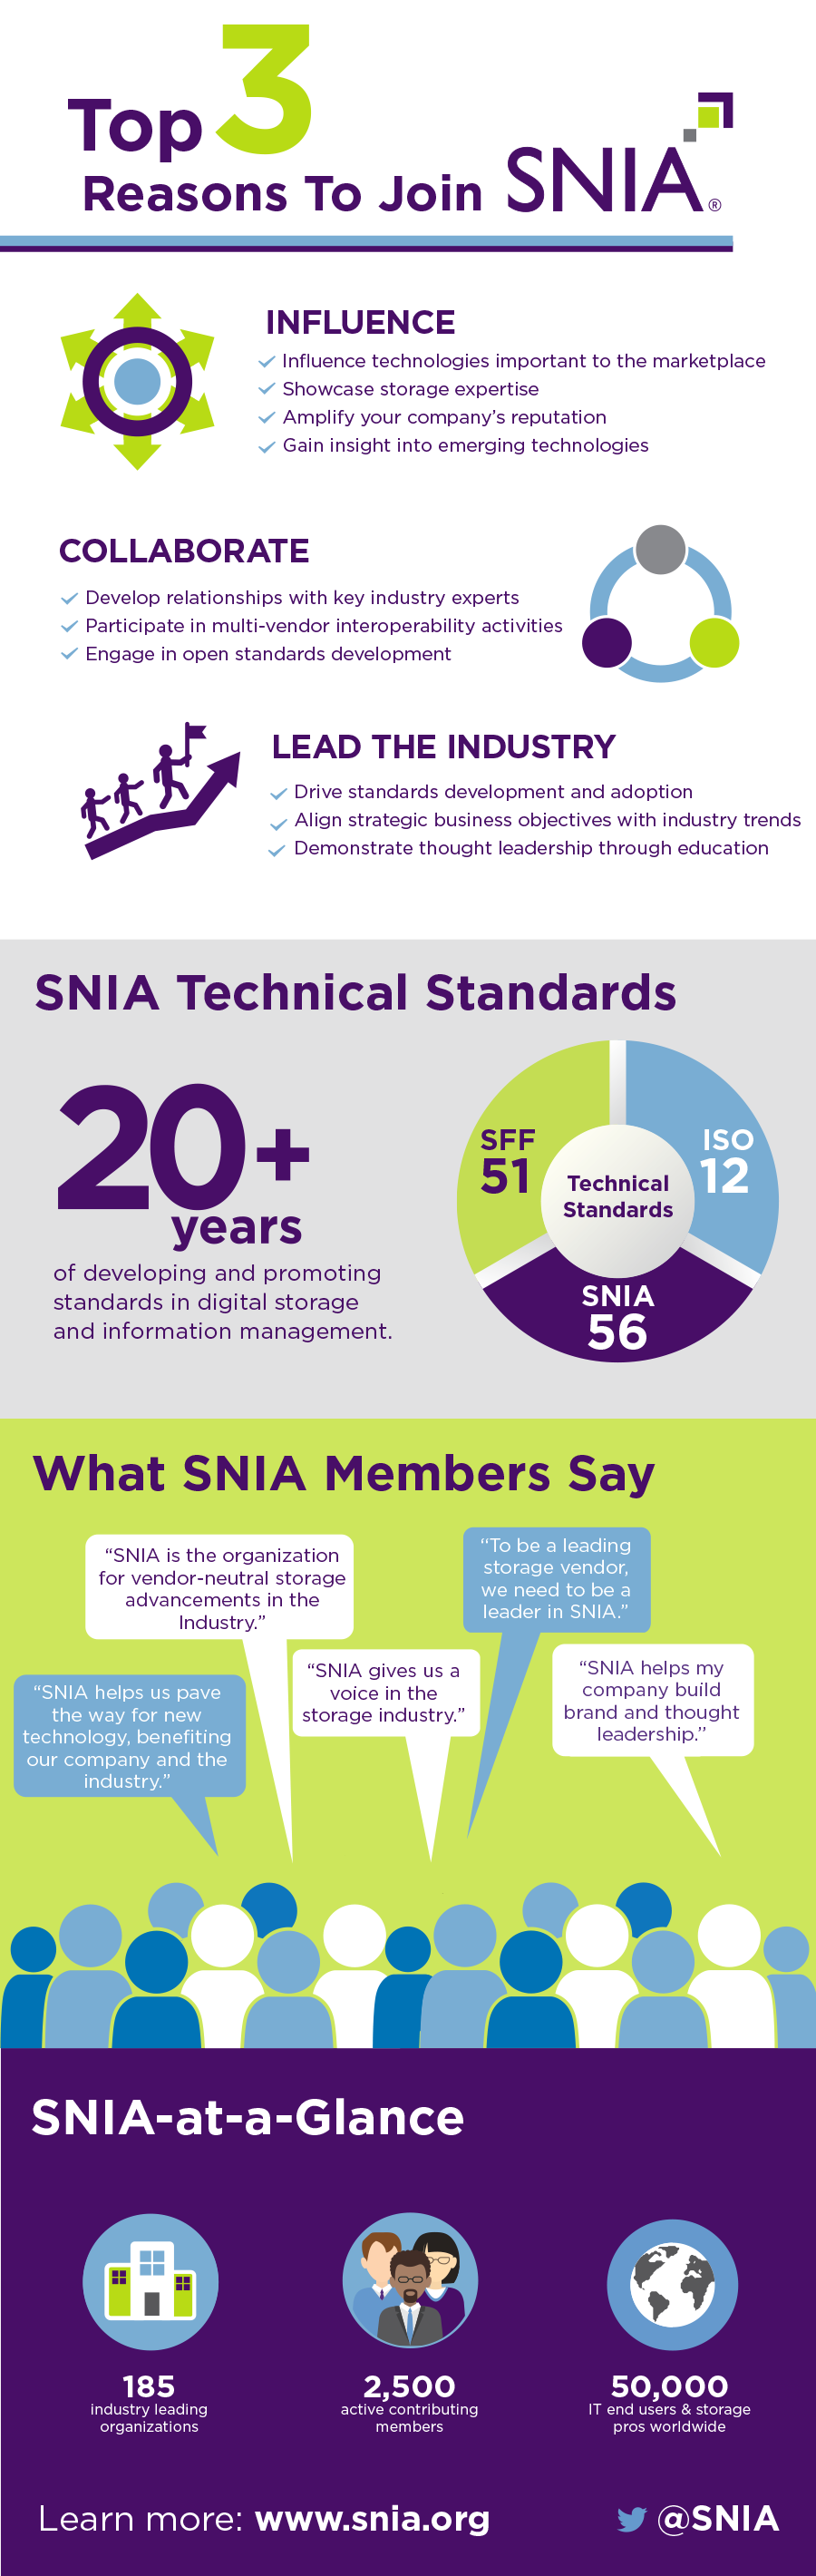 Top 3 Reaosons to Join SNIA